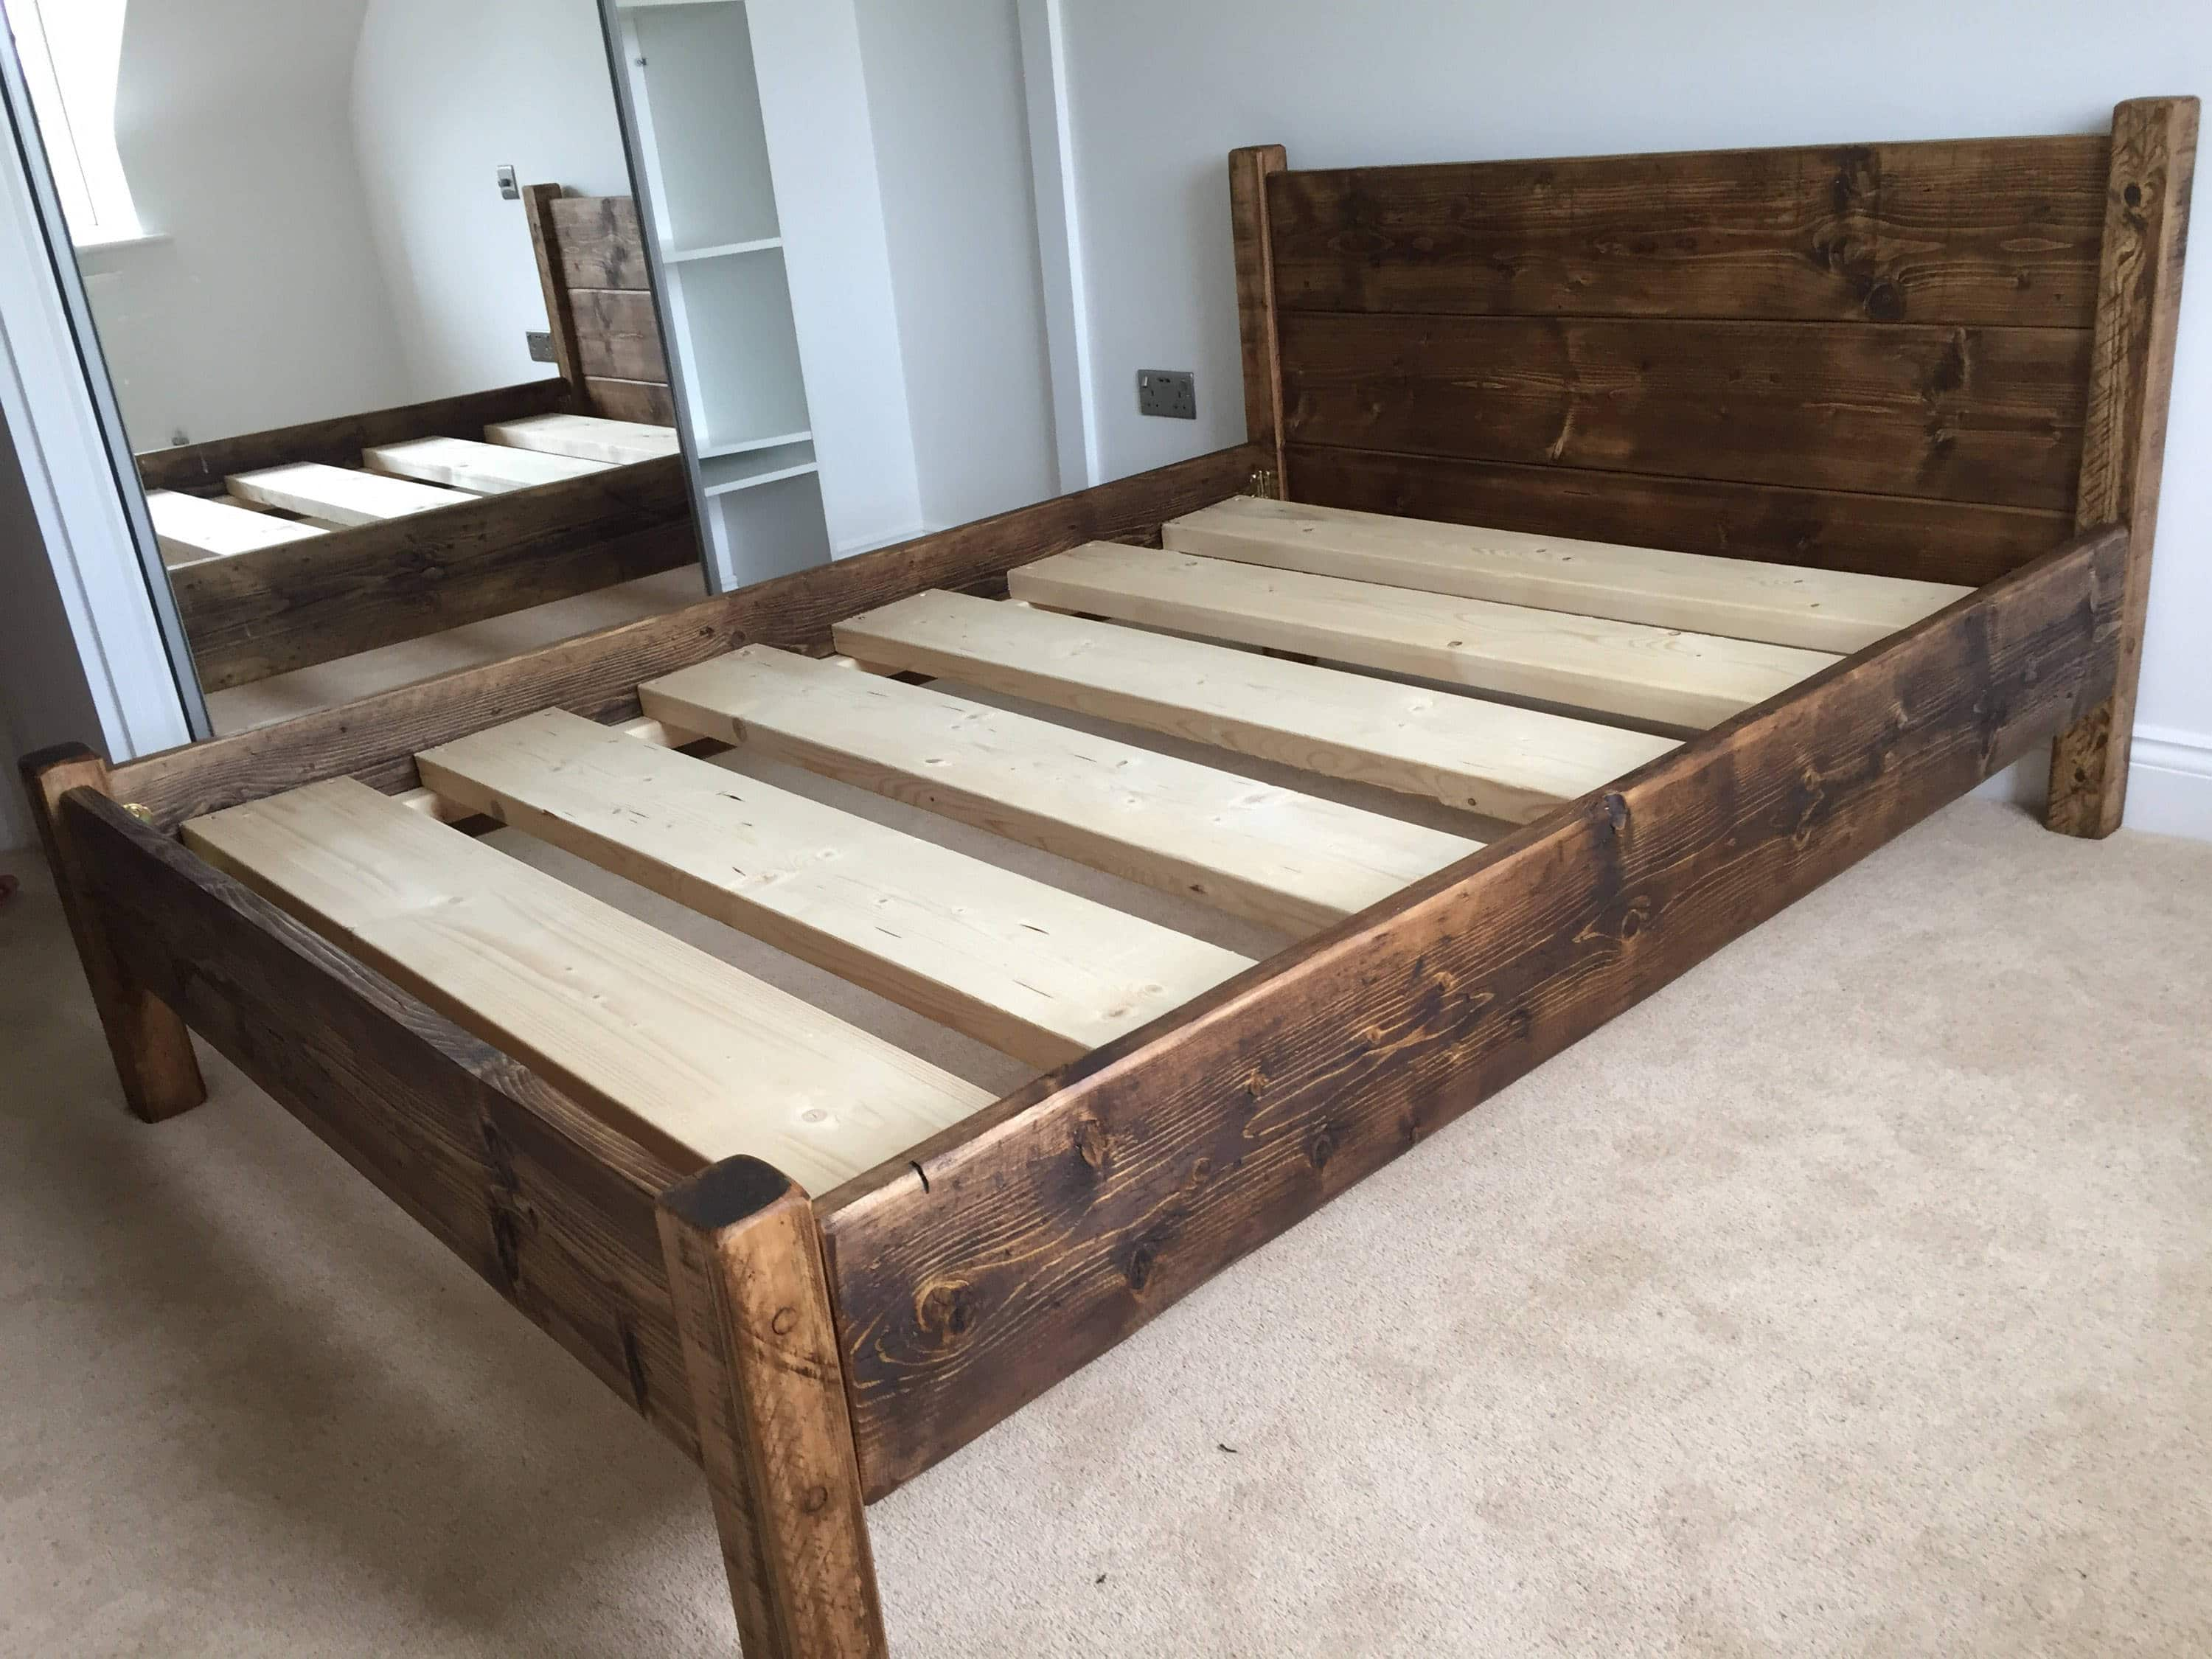 headboard headboardfootboard abode queen hillsdalefurniture king bed footboard for frame bedframe humble